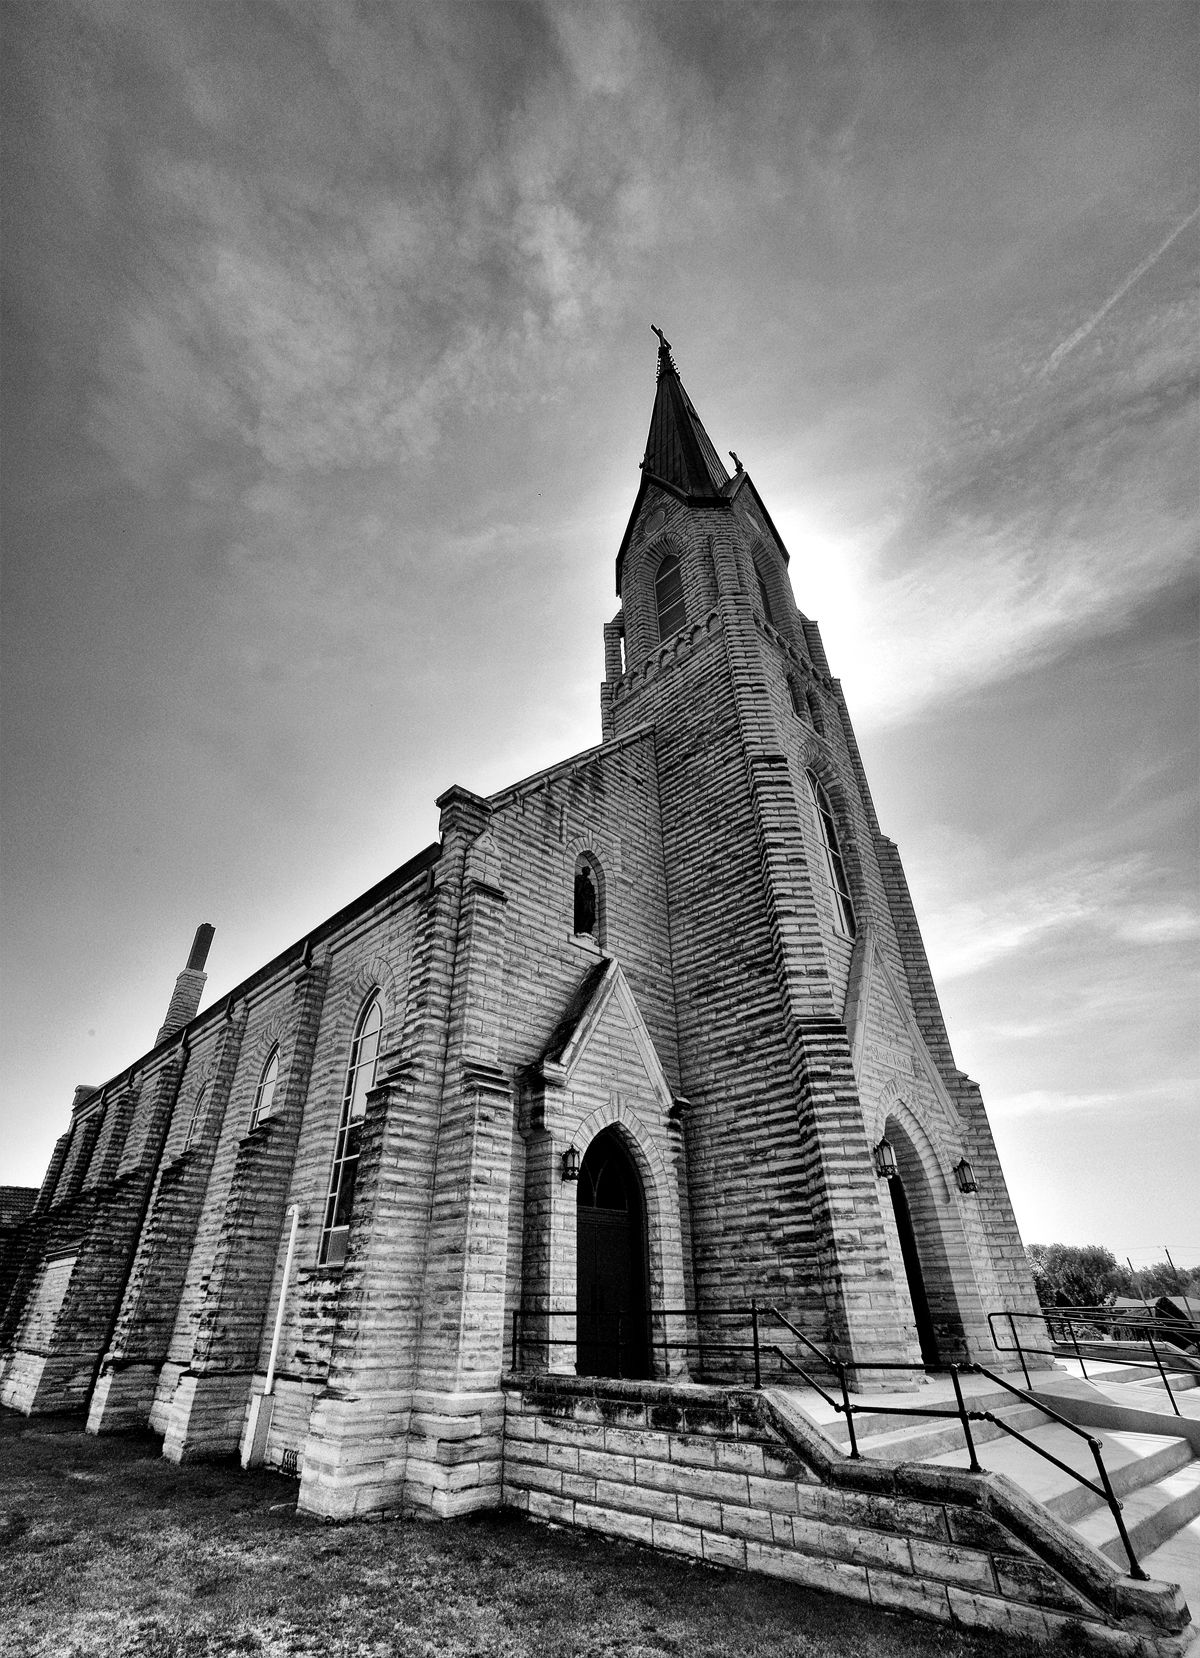 Kansas rush county liebenthal - St Joseph S Church In Liebenthal Kansas The Community Was Founded By Immigrants Of The